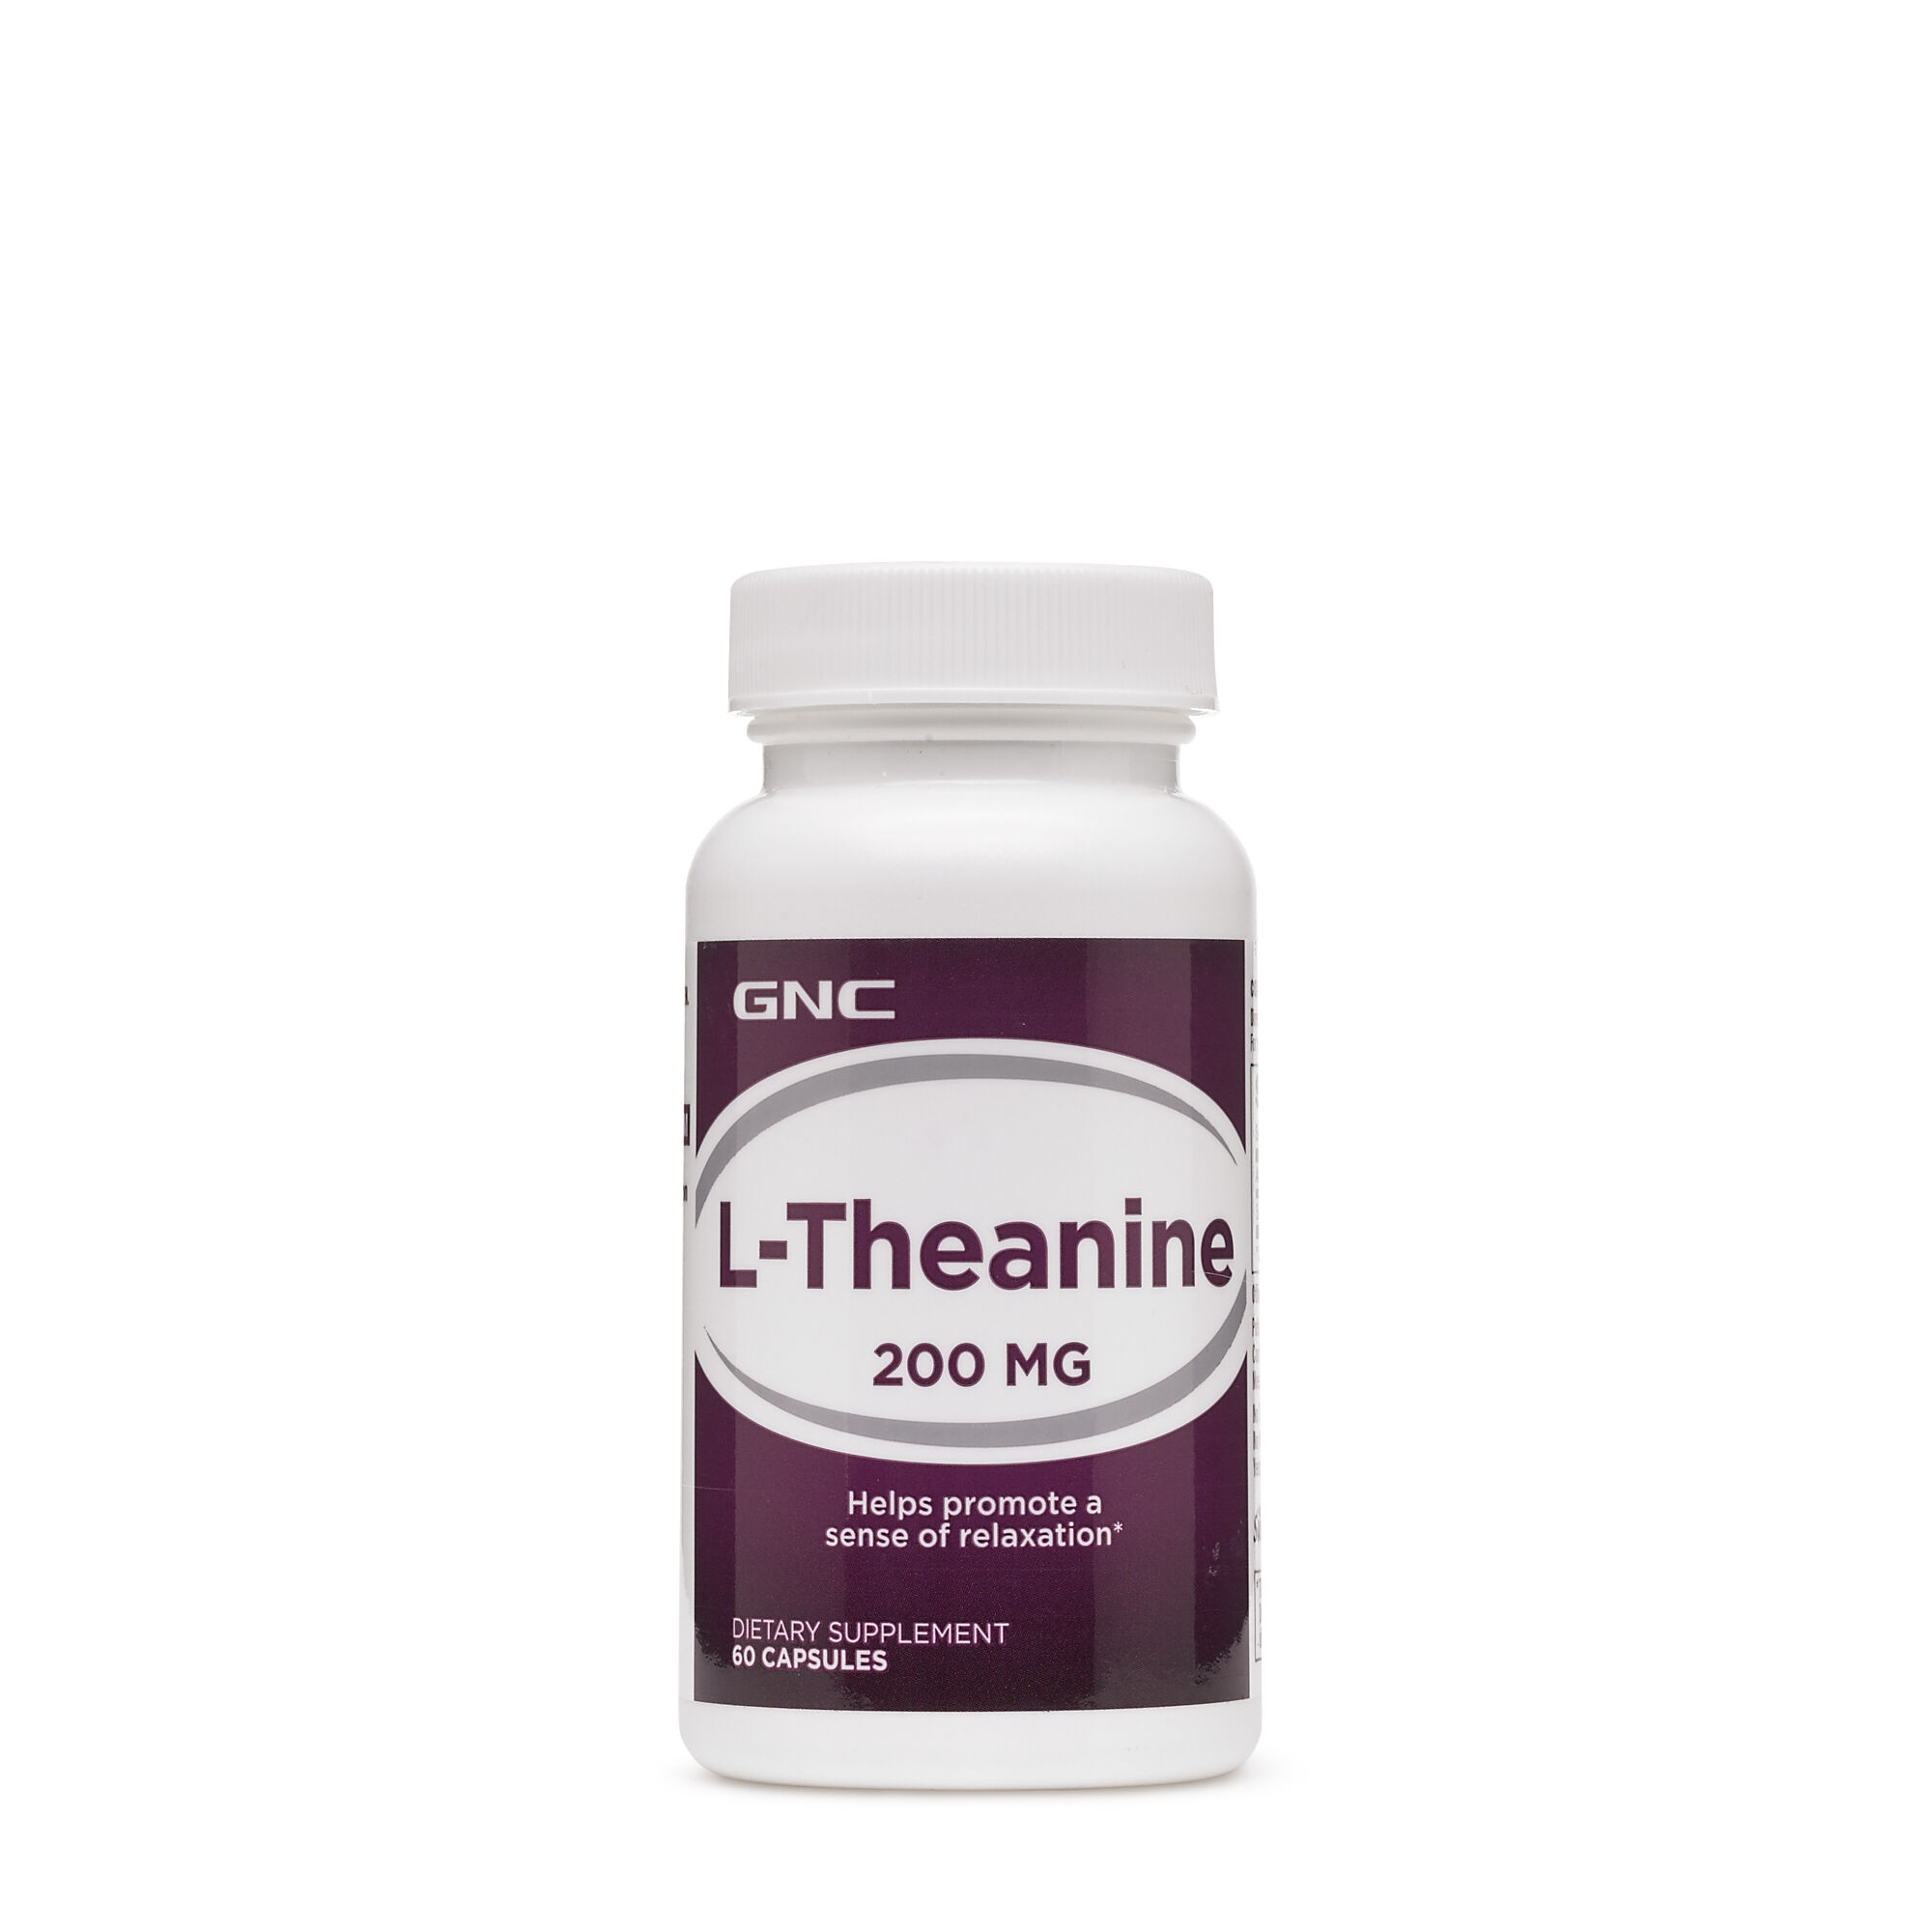 GNC L-Theanine 200